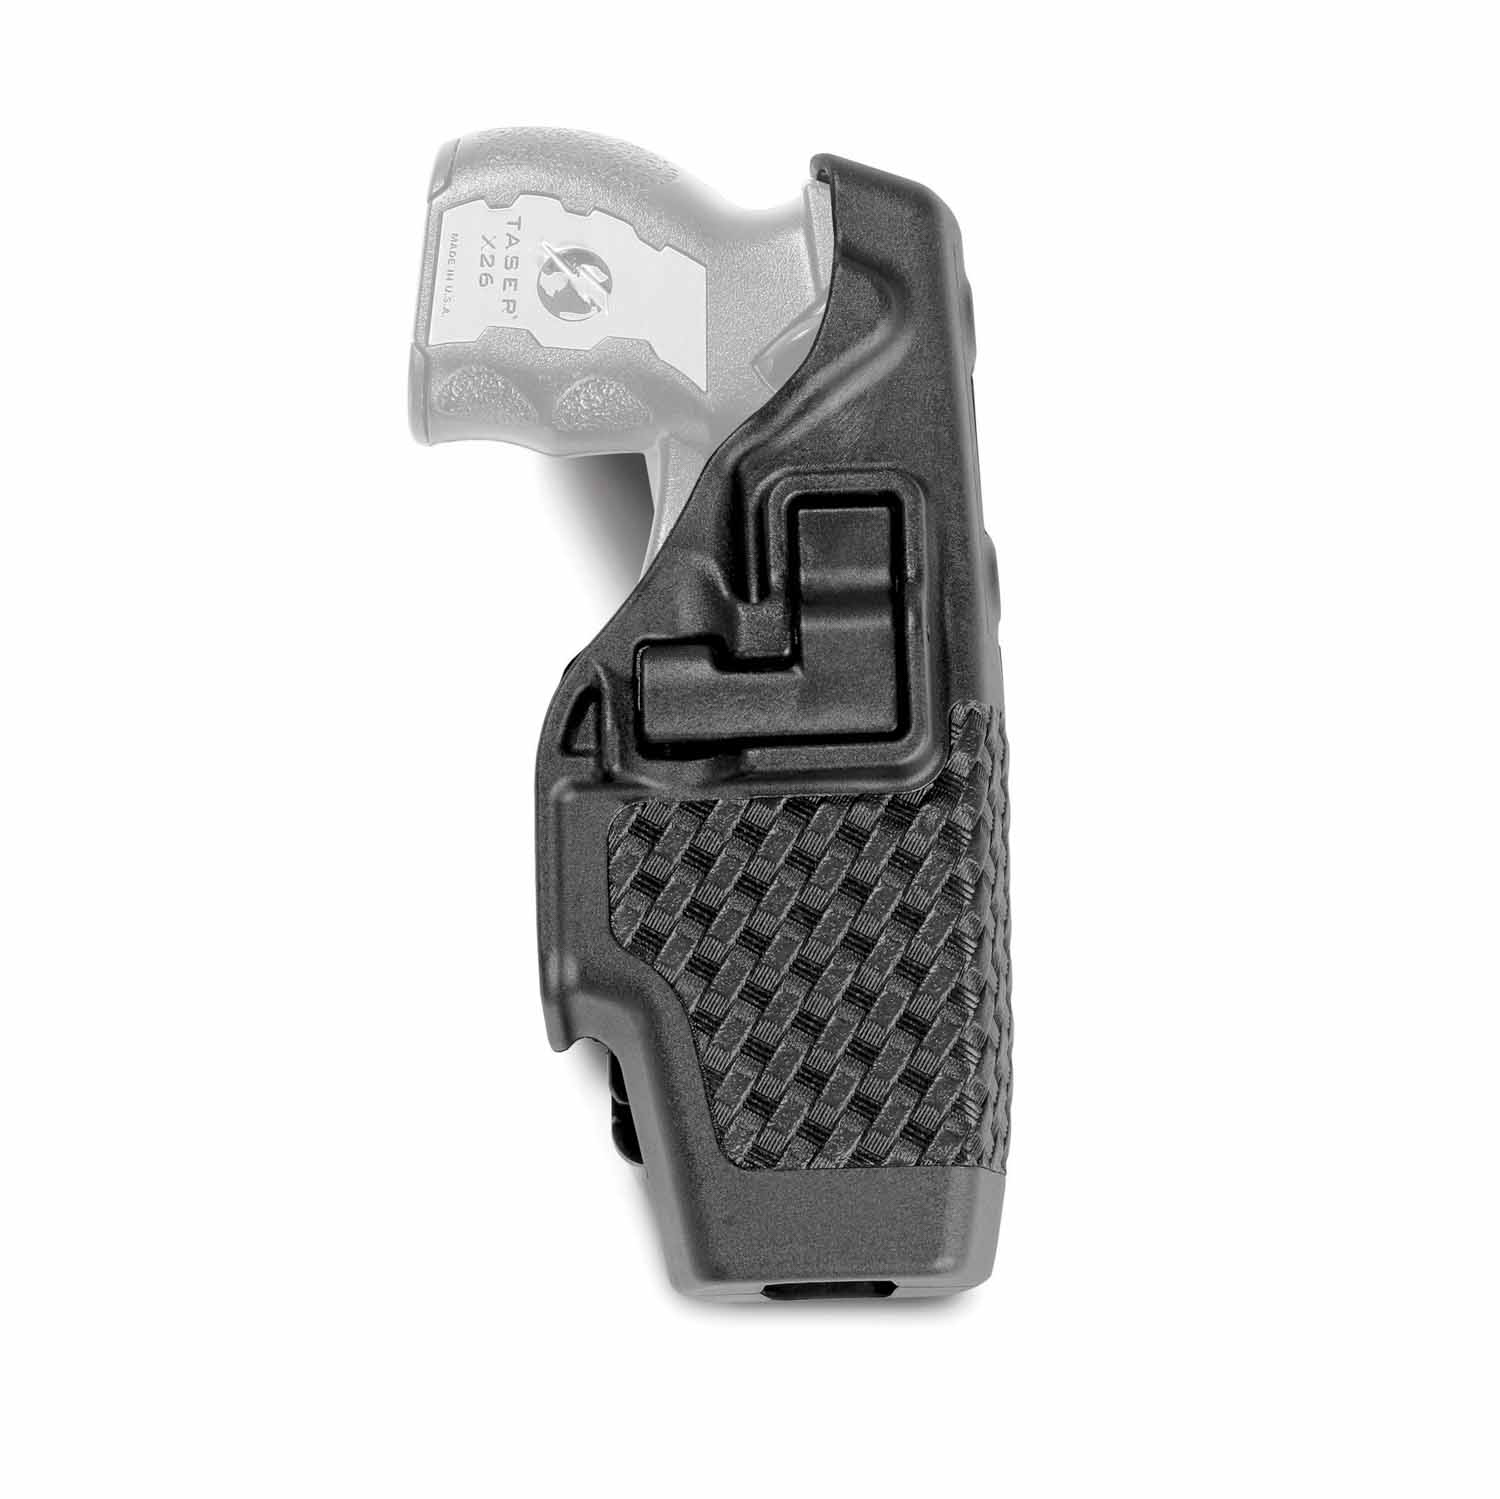 BLACKHAWK! SERPA Duty Holster for the X-26 TASER Basketweave